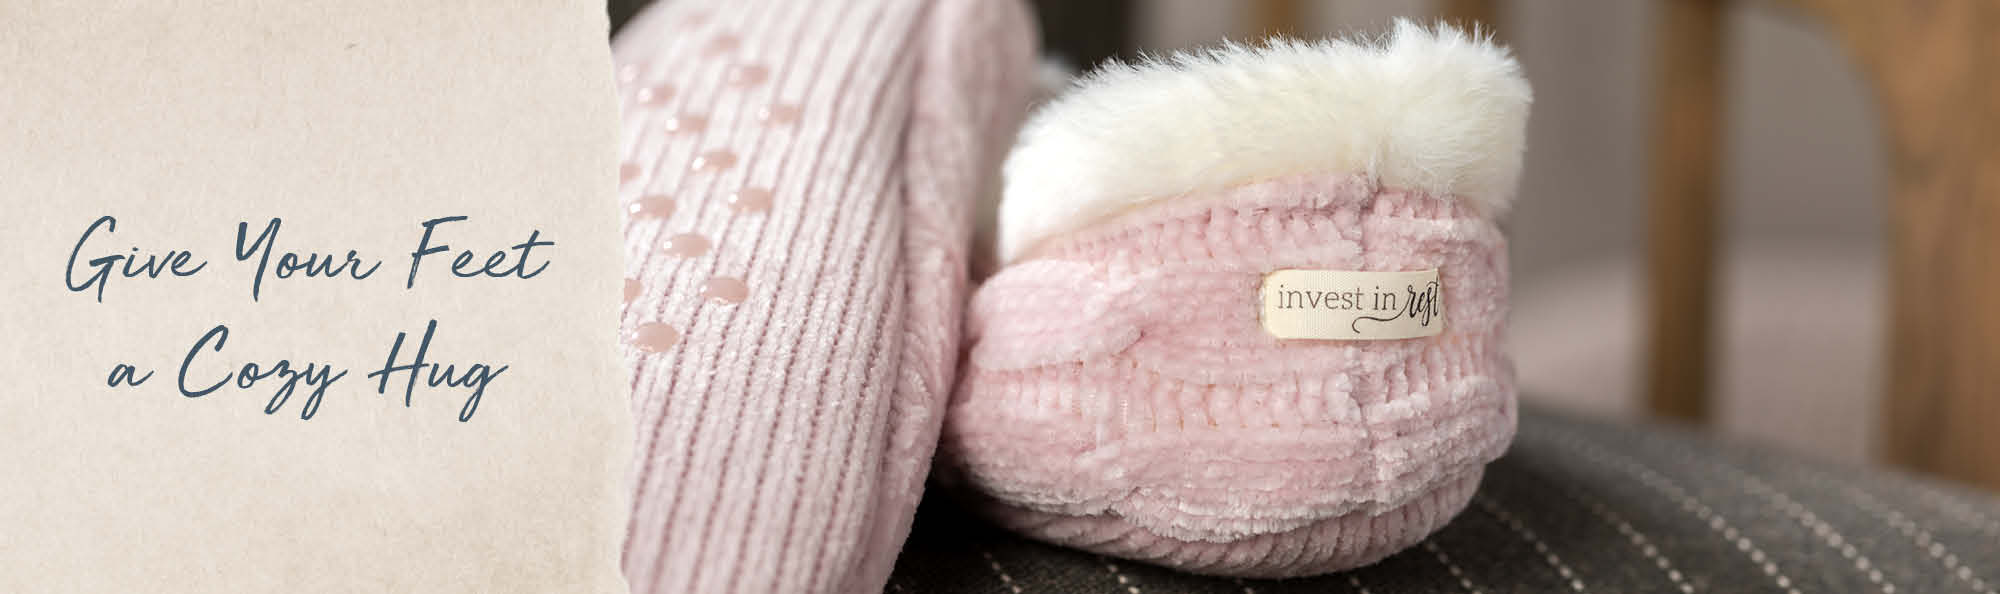 Give Your Feet a Cozy Hug. Soft pink slippers with a tag that reads Invest in Rest.